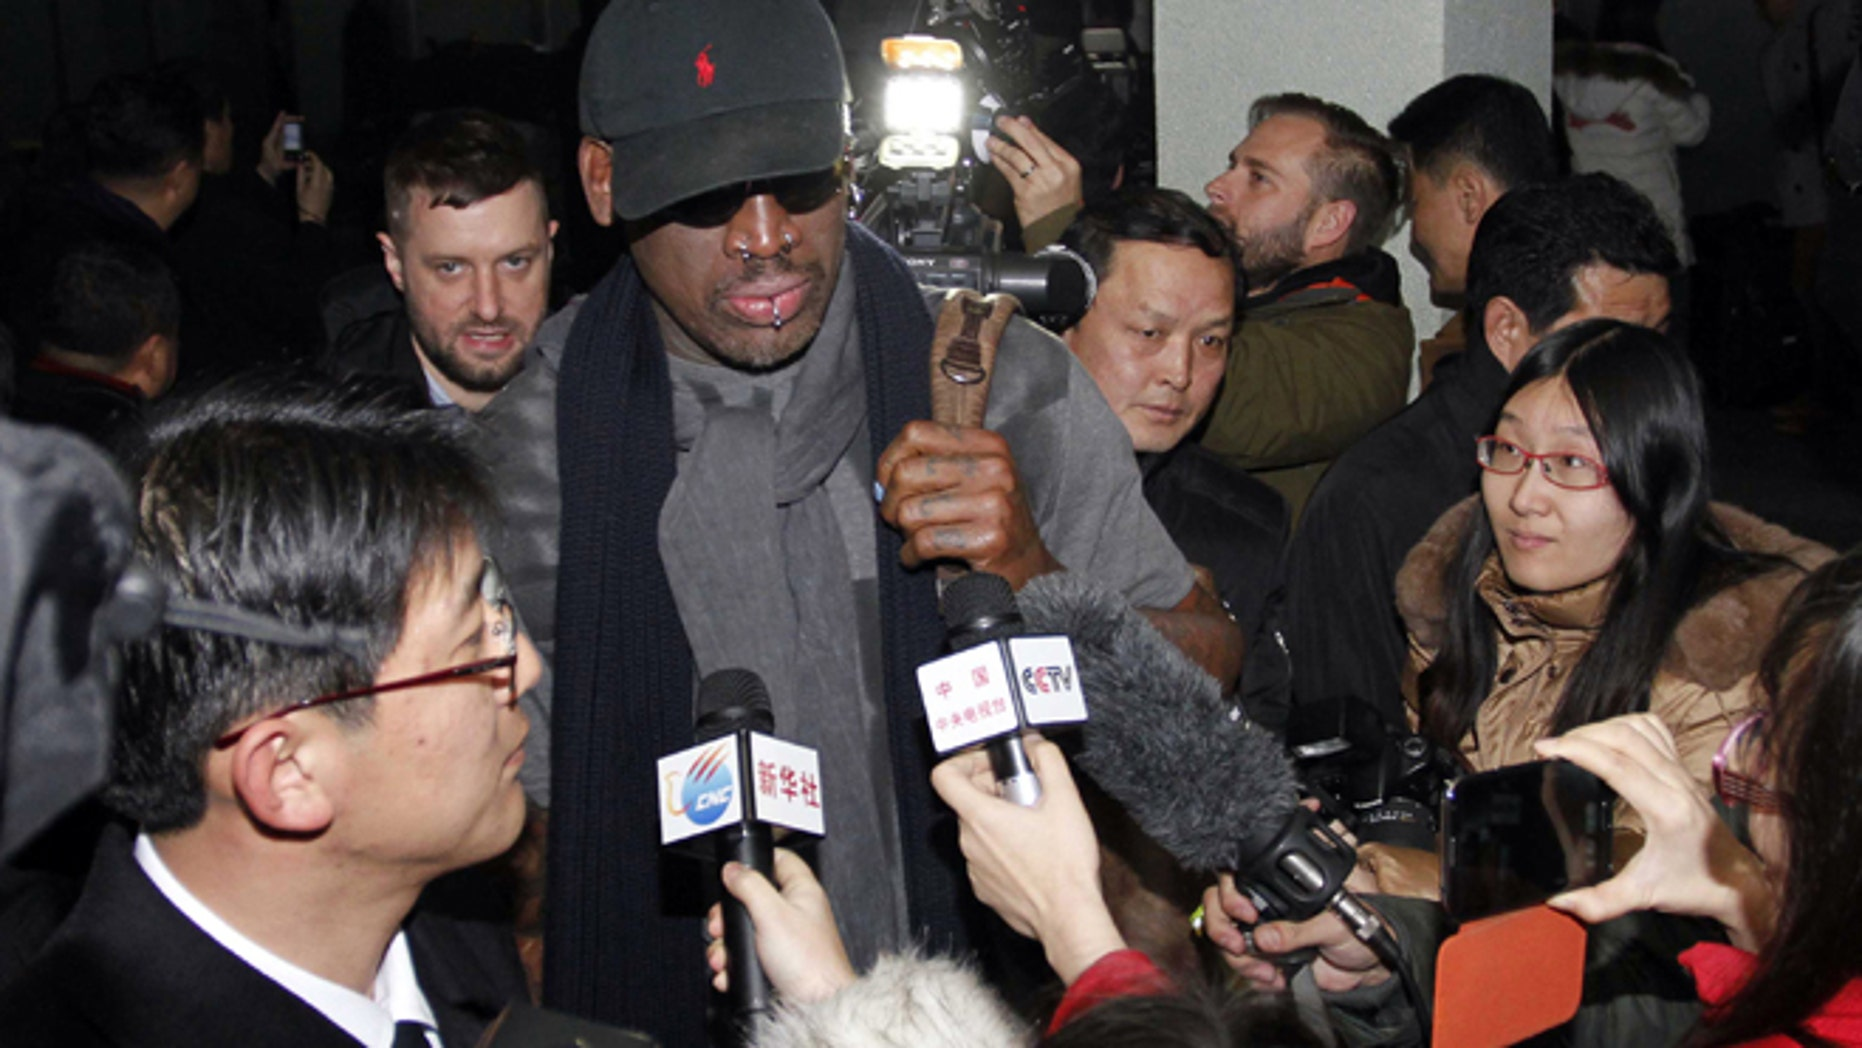 """Feb. 26, 2013: Flamboyant former NBA star Dennis Rodman is surrounded by journalists upon arrival at Pyongyang Airport, North Korea. The American known as """"The Worm"""" arrived in Pyongyang, becoming an unlikely ambassador for sports diplomacy at a time of heightened tensions between the U.S. and North Korea."""